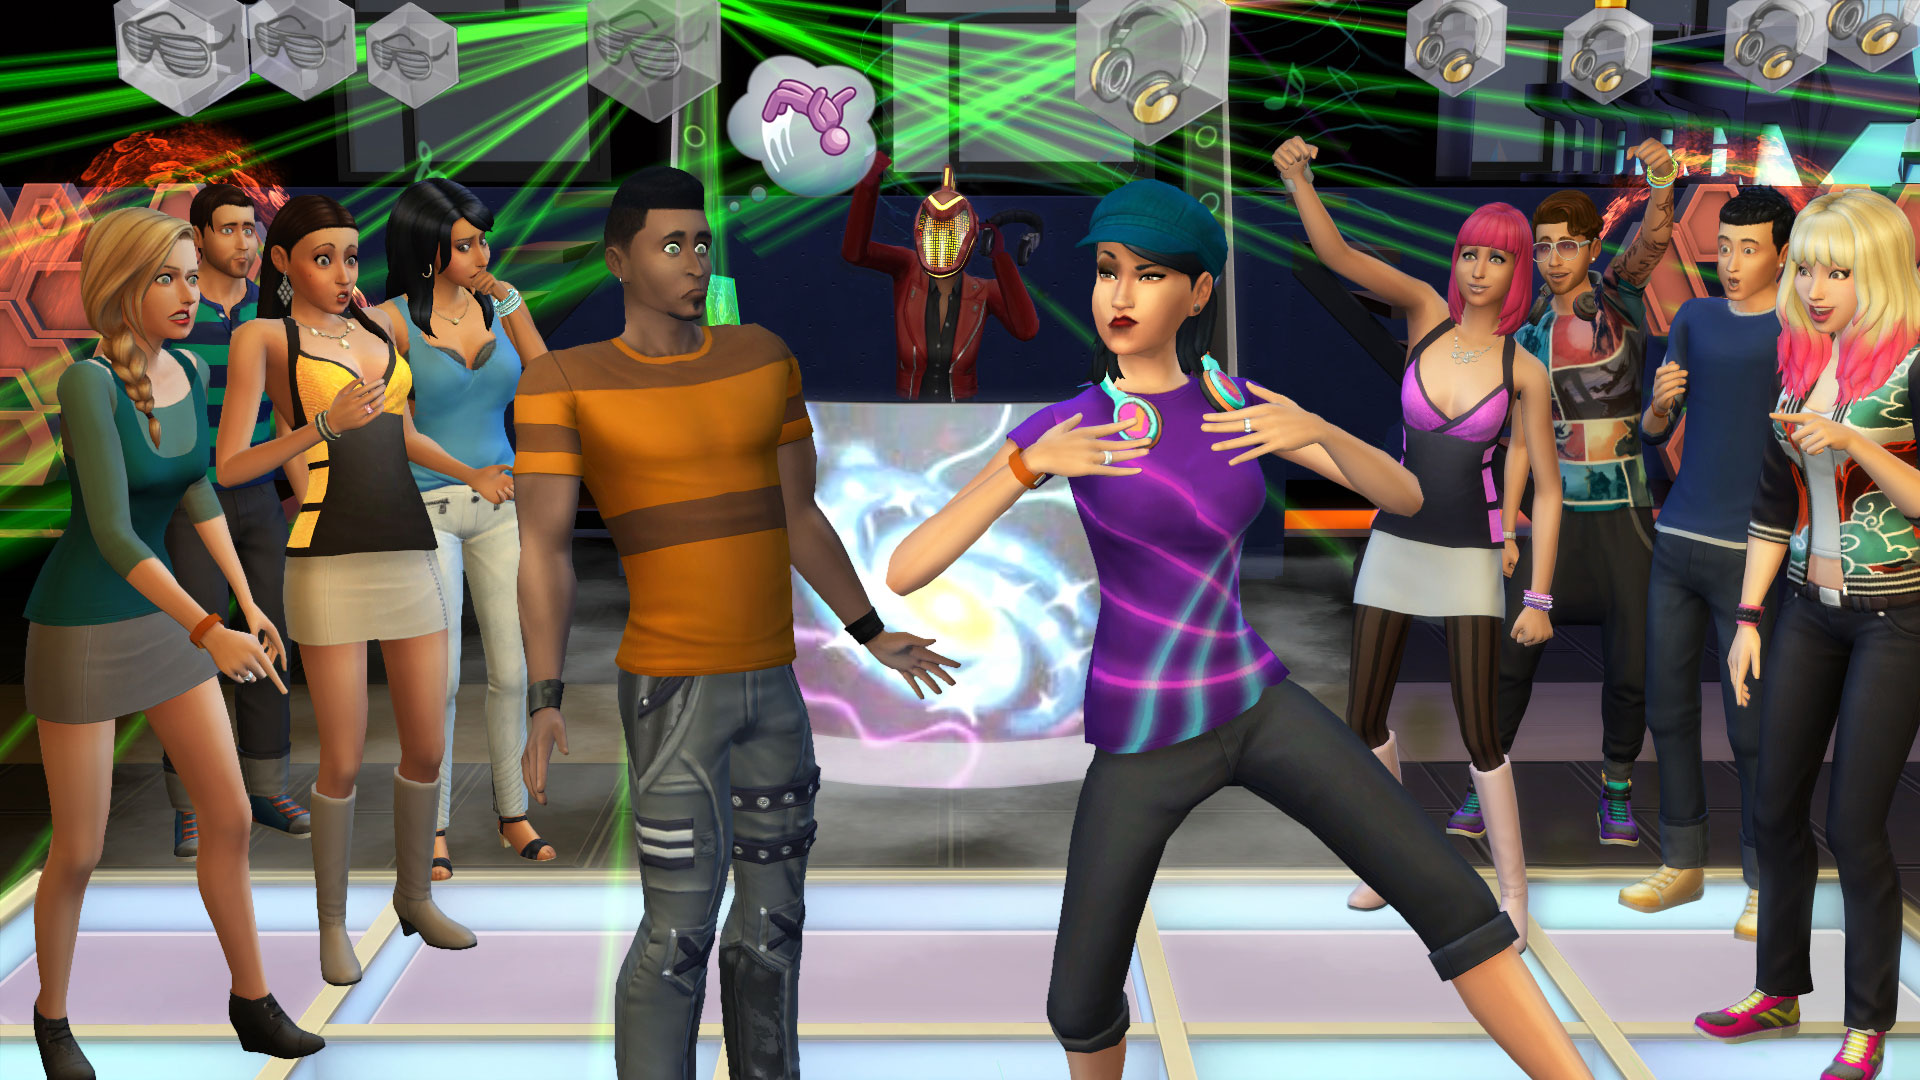 the sims 4 get together the sims wiki fandom powered by wikia. Black Bedroom Furniture Sets. Home Design Ideas